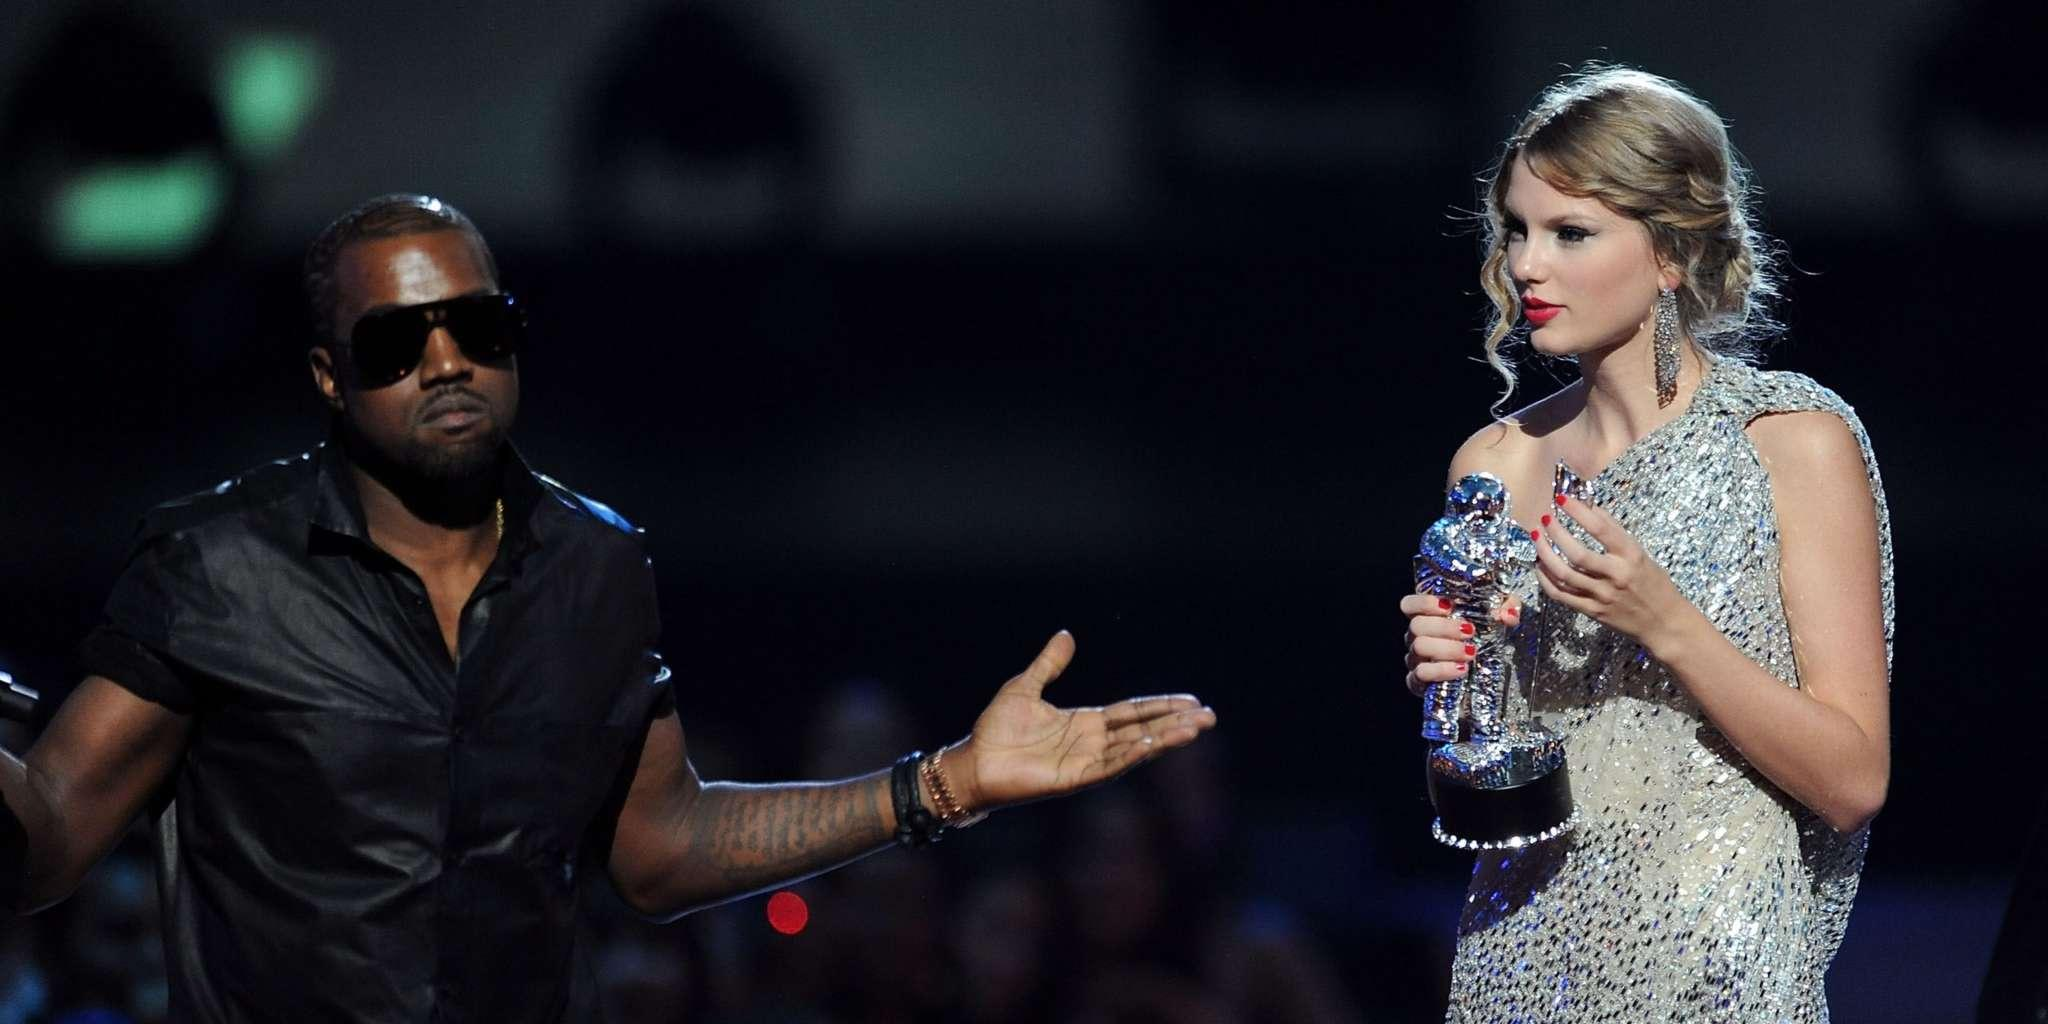 Kanye West Says God Wanted Him To Interrupt Taylor Swift's Acceptance Speech At The VMAs 11 Years Ago!